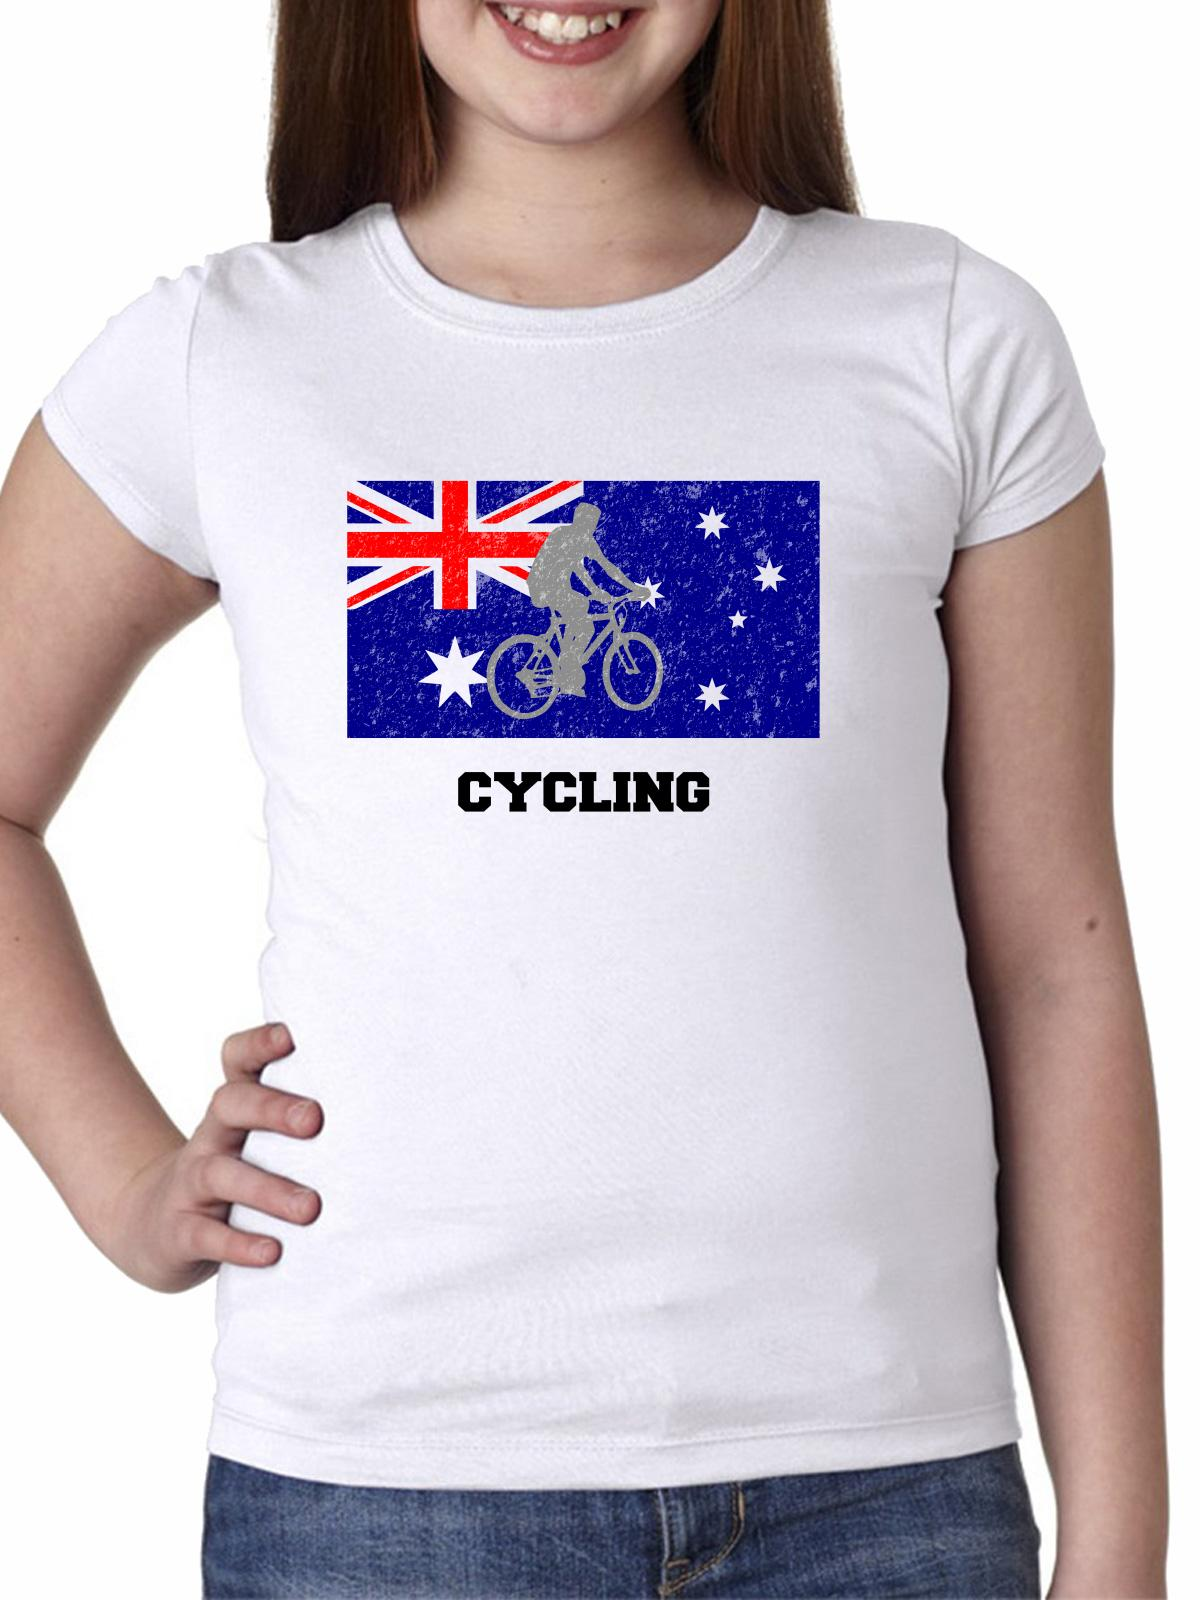 Australia Olympic - Cycling - Flag - Silhouette Girl's Cotton Youth T-Shirt